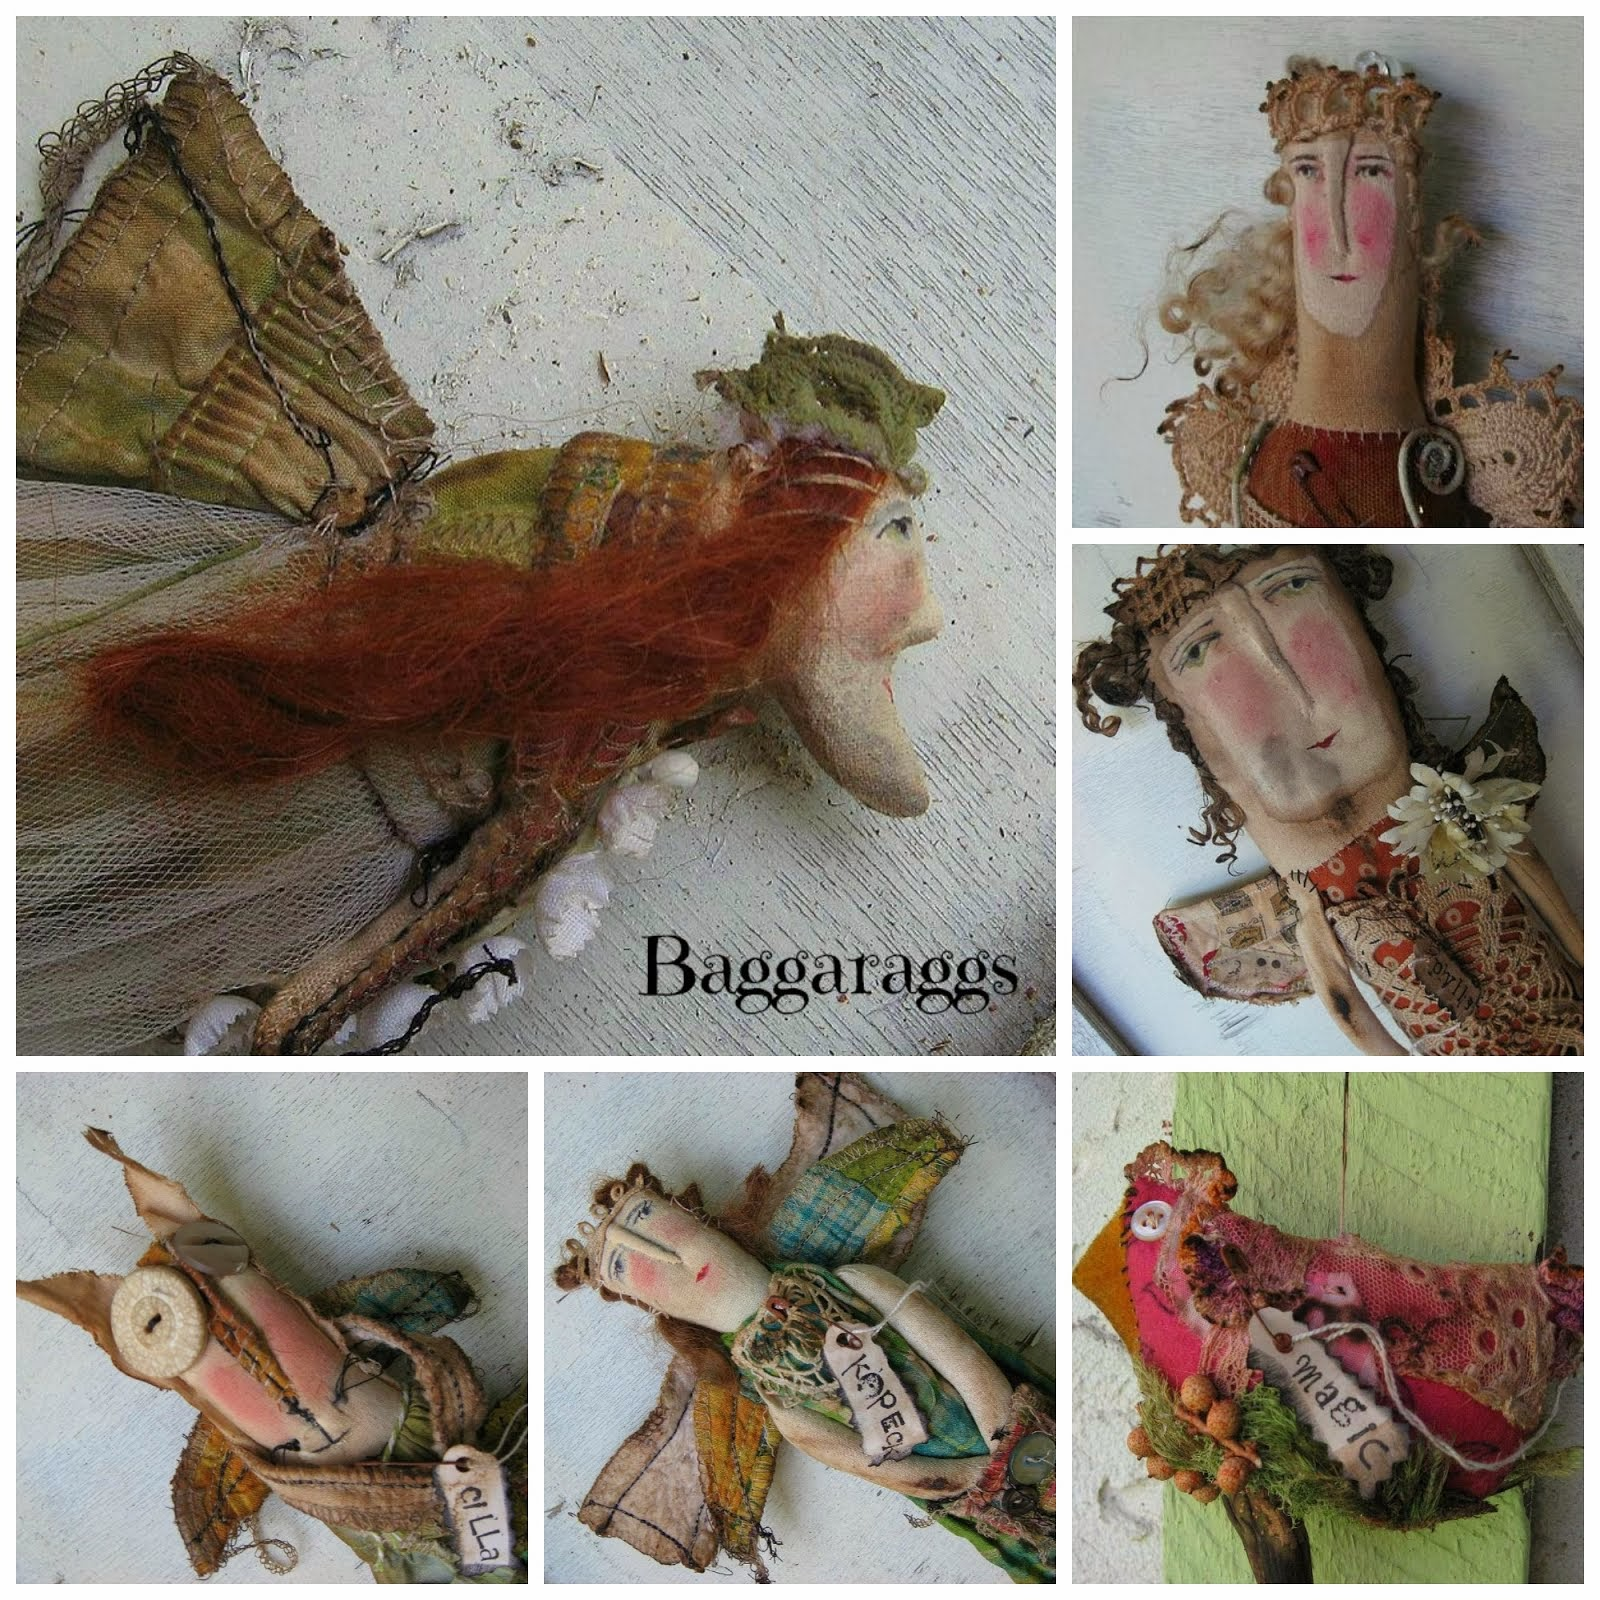 BAGGARAGGS BLOG HAS SUCH WHIMSICAL DOLLS FOR SALE ON ETSY!